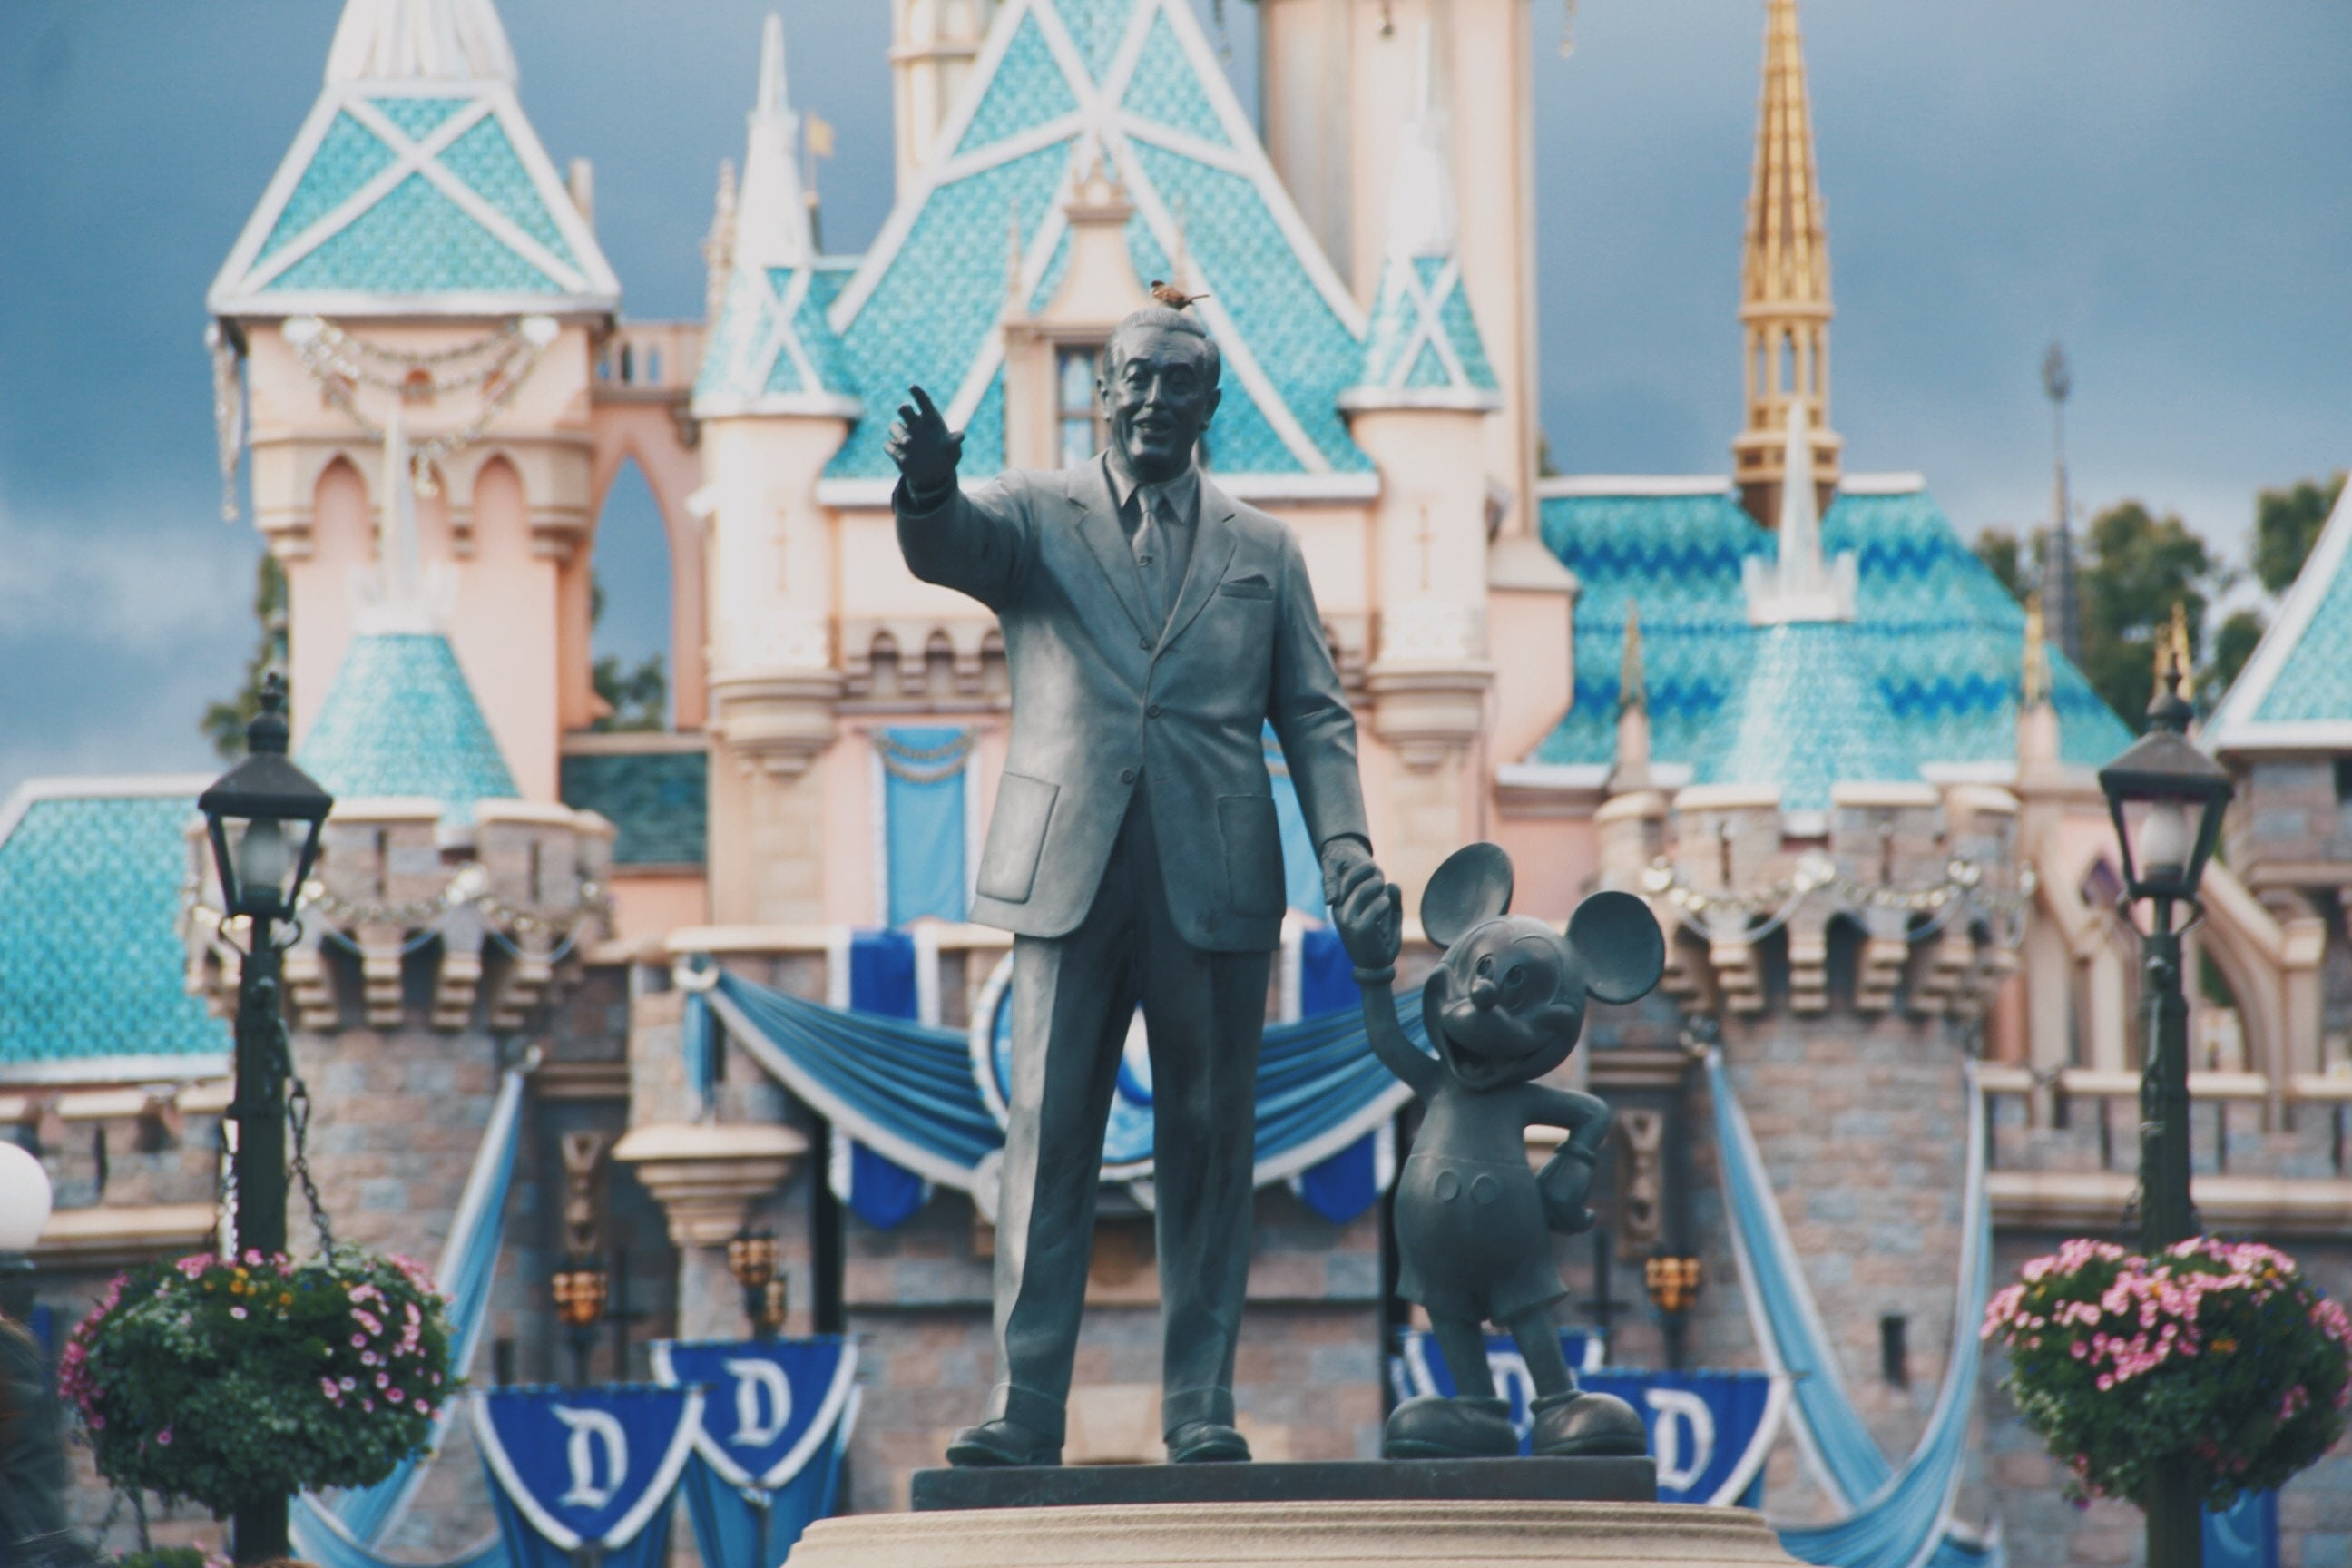 Disneyland Florida Disneyland Wouldn T Exist Without Life Insurance Life And Health